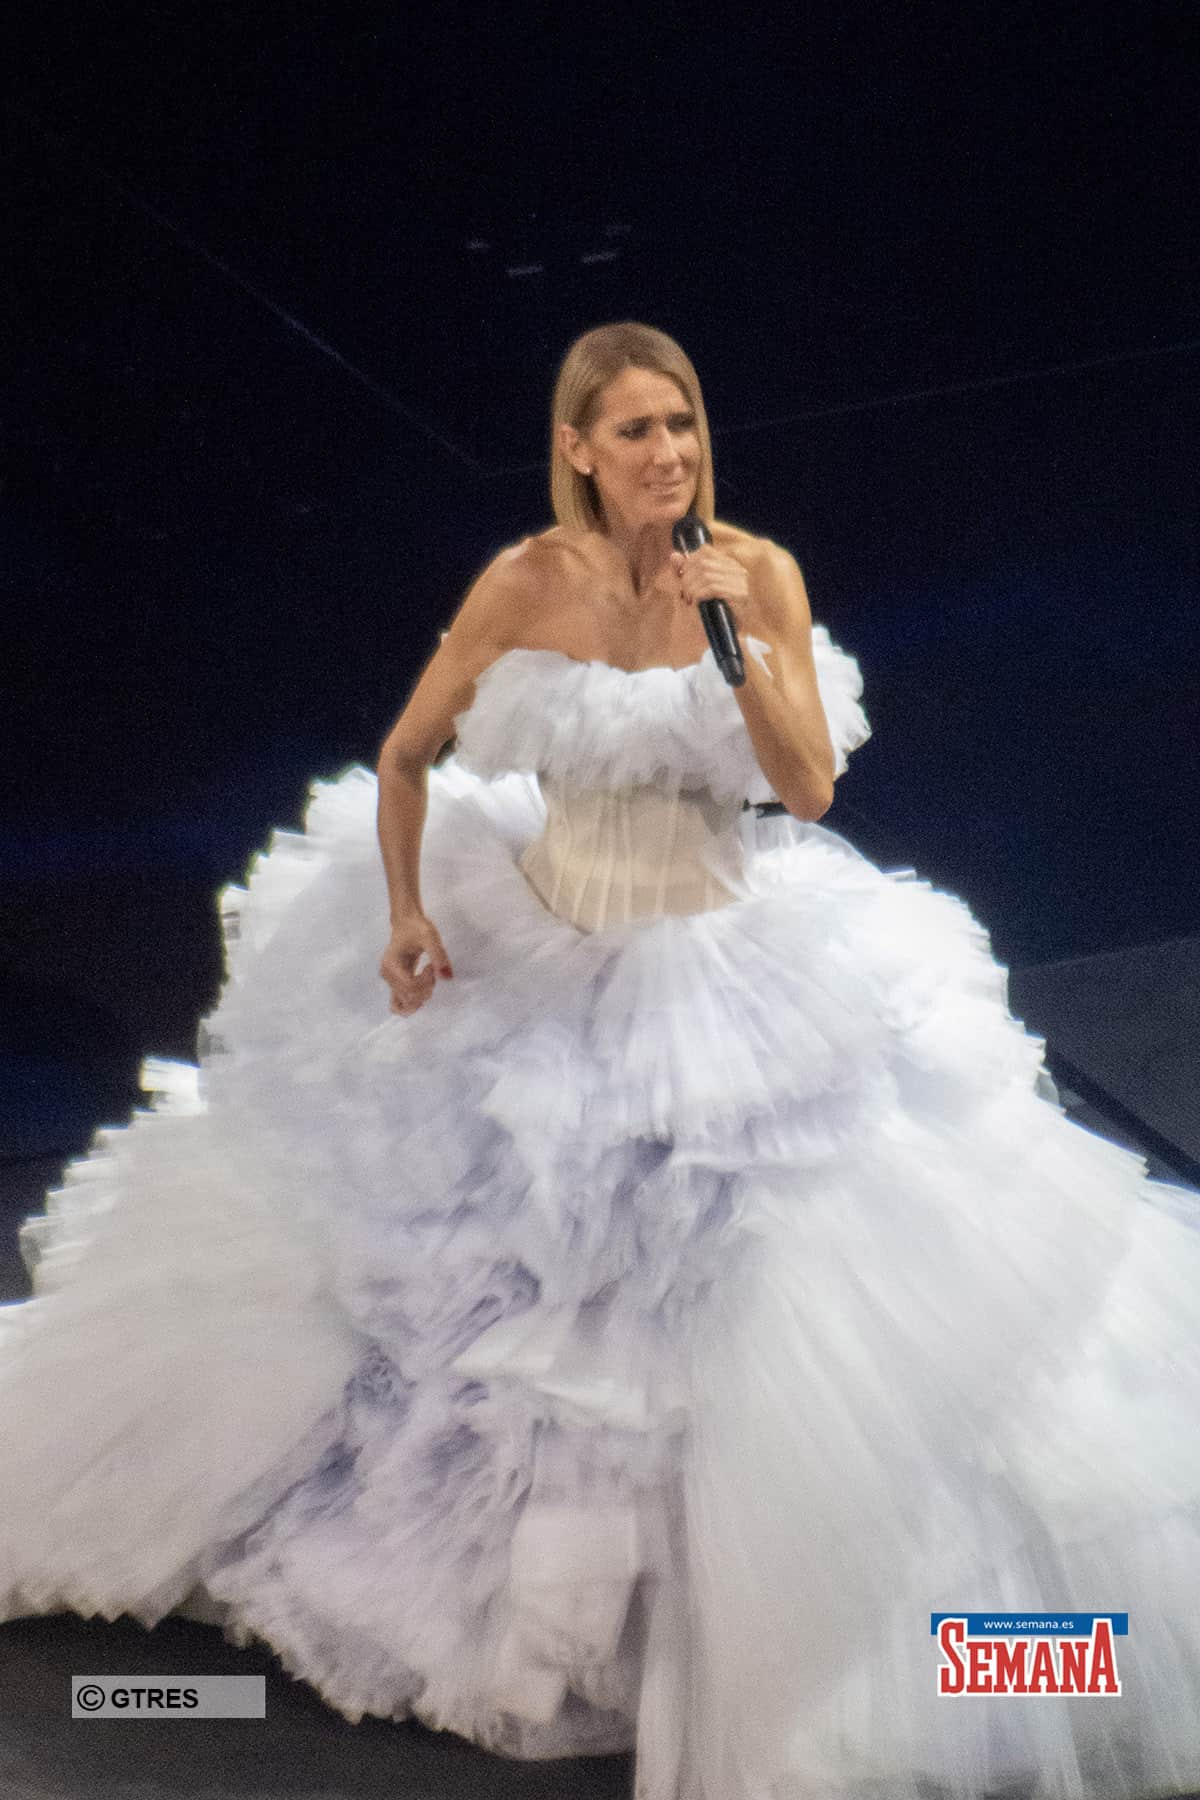 The show must go on. Celine Dion performs in Miami just hours after her mother Therese Dion dies in Montreal, Canada .